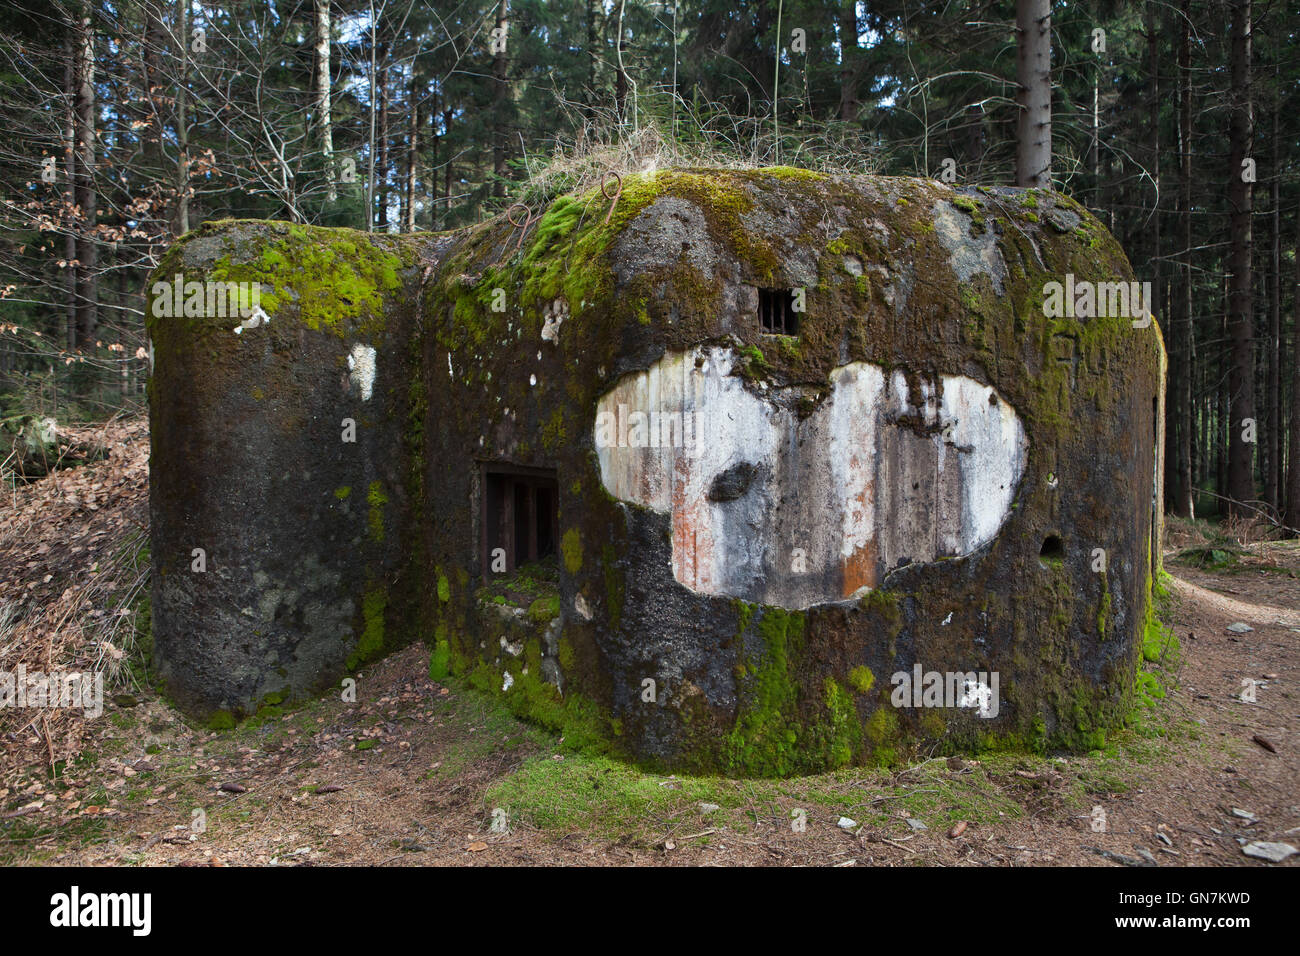 Abandoned pillbox model 37 once used to be a part of the Czechoslovak border fortifications located on the road Stock Photo